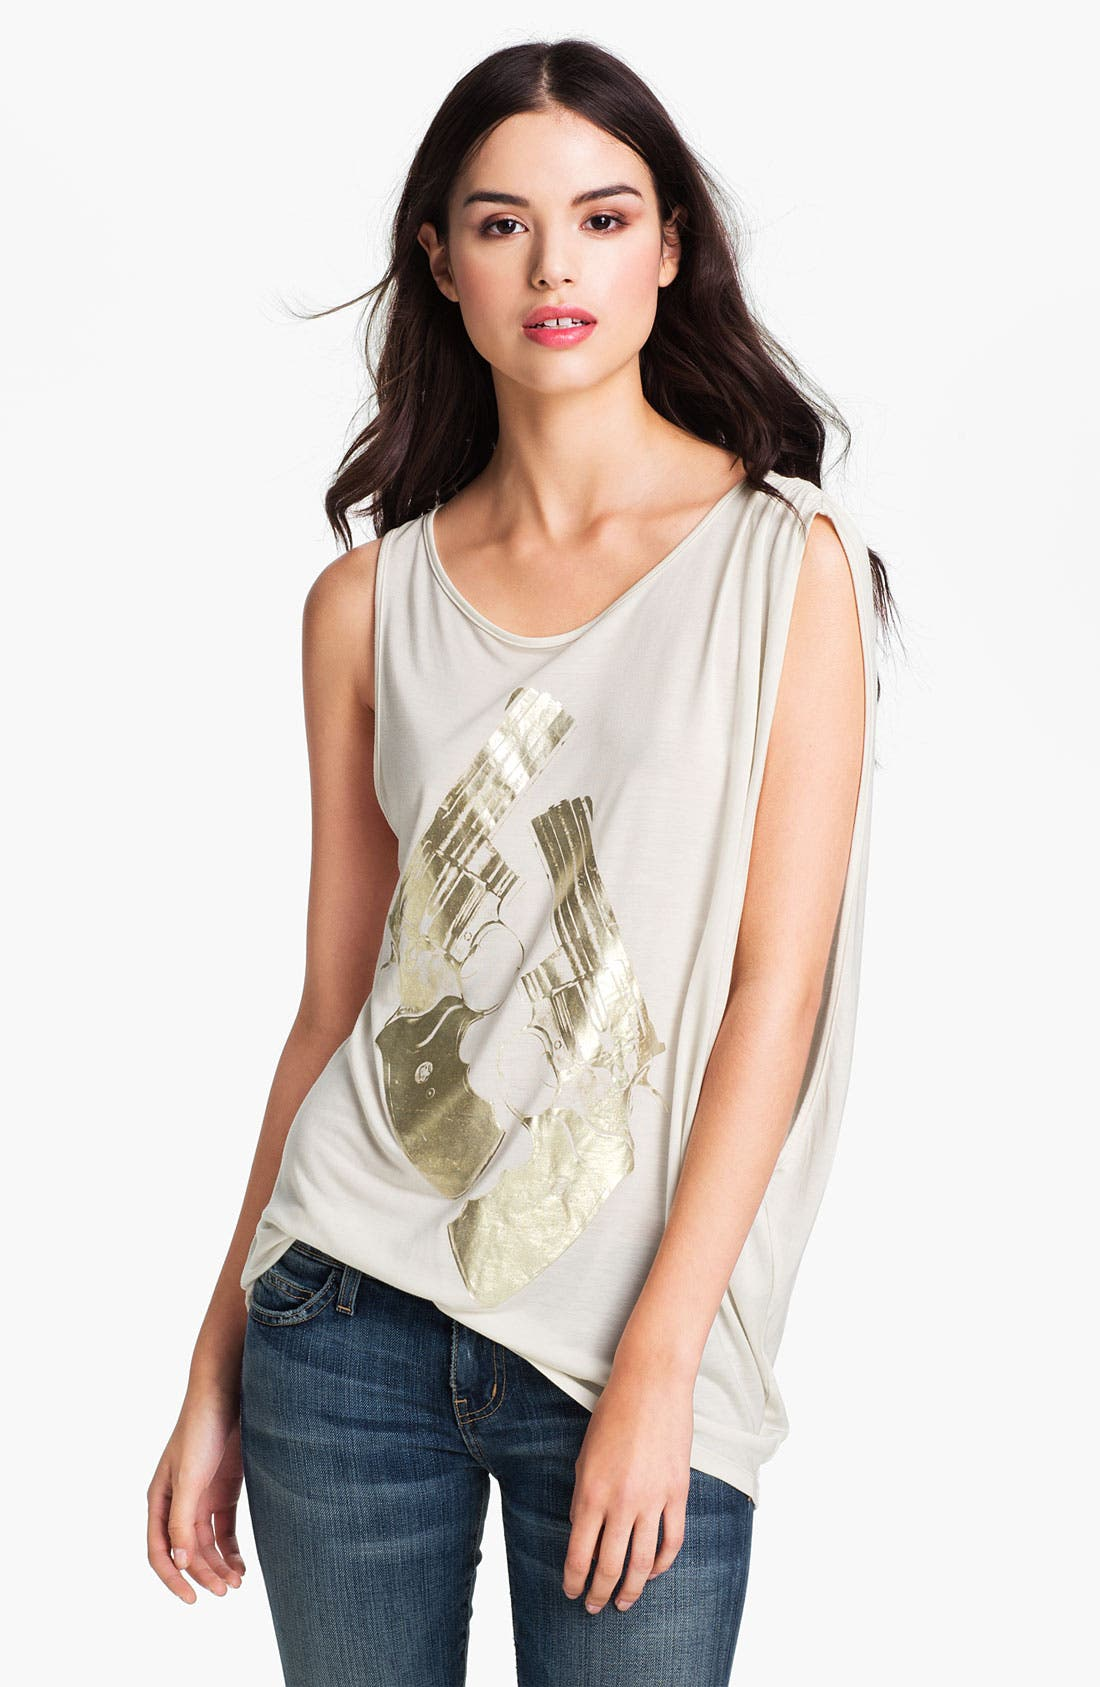 Main Image - Haute Hippie 'Gold Guns' Metallic Graphic Tank